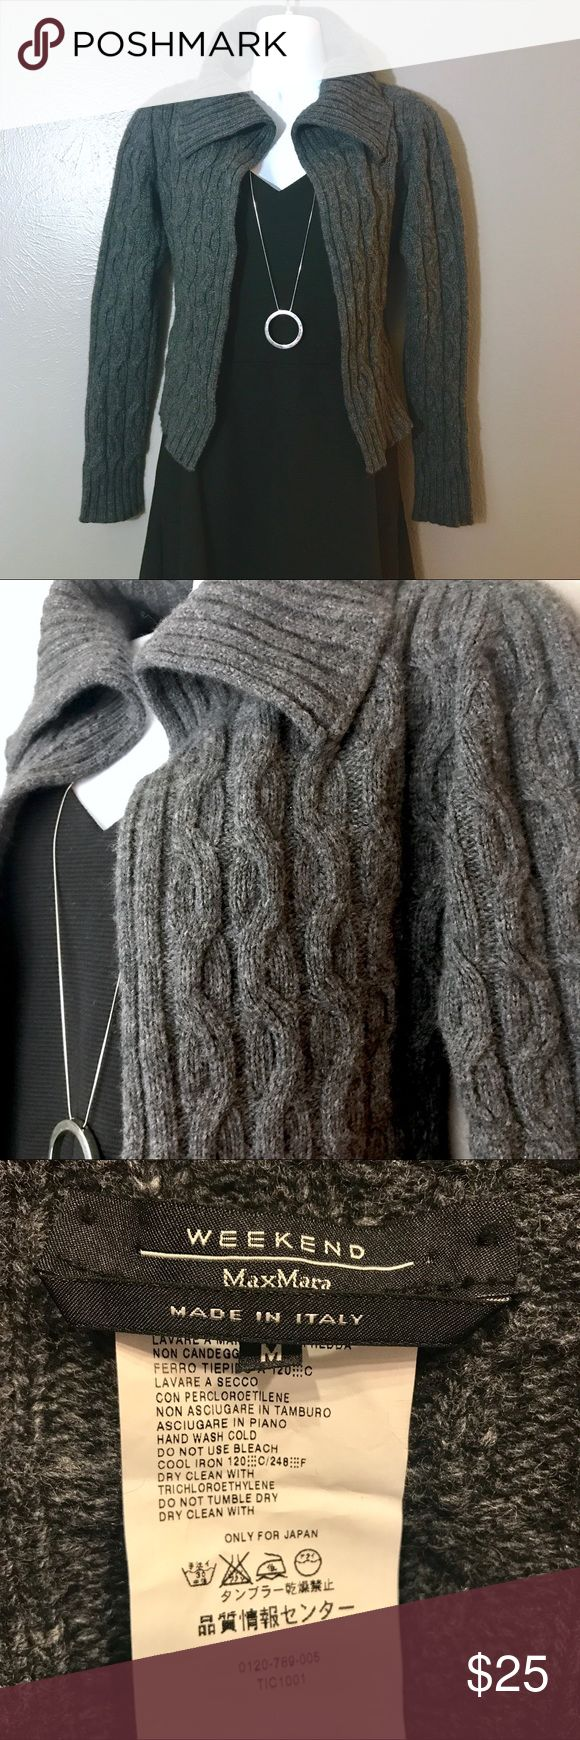 👍Max Mara Weekend Open Front Cardigan👍 EUC - Max Mara Weekend - Open Front Cardigan - Cashmere, Wool, Angora, Nylon Blend (see tag image for ratios) - SO soft! SZ Medium Max Mara Sweaters Cardigans